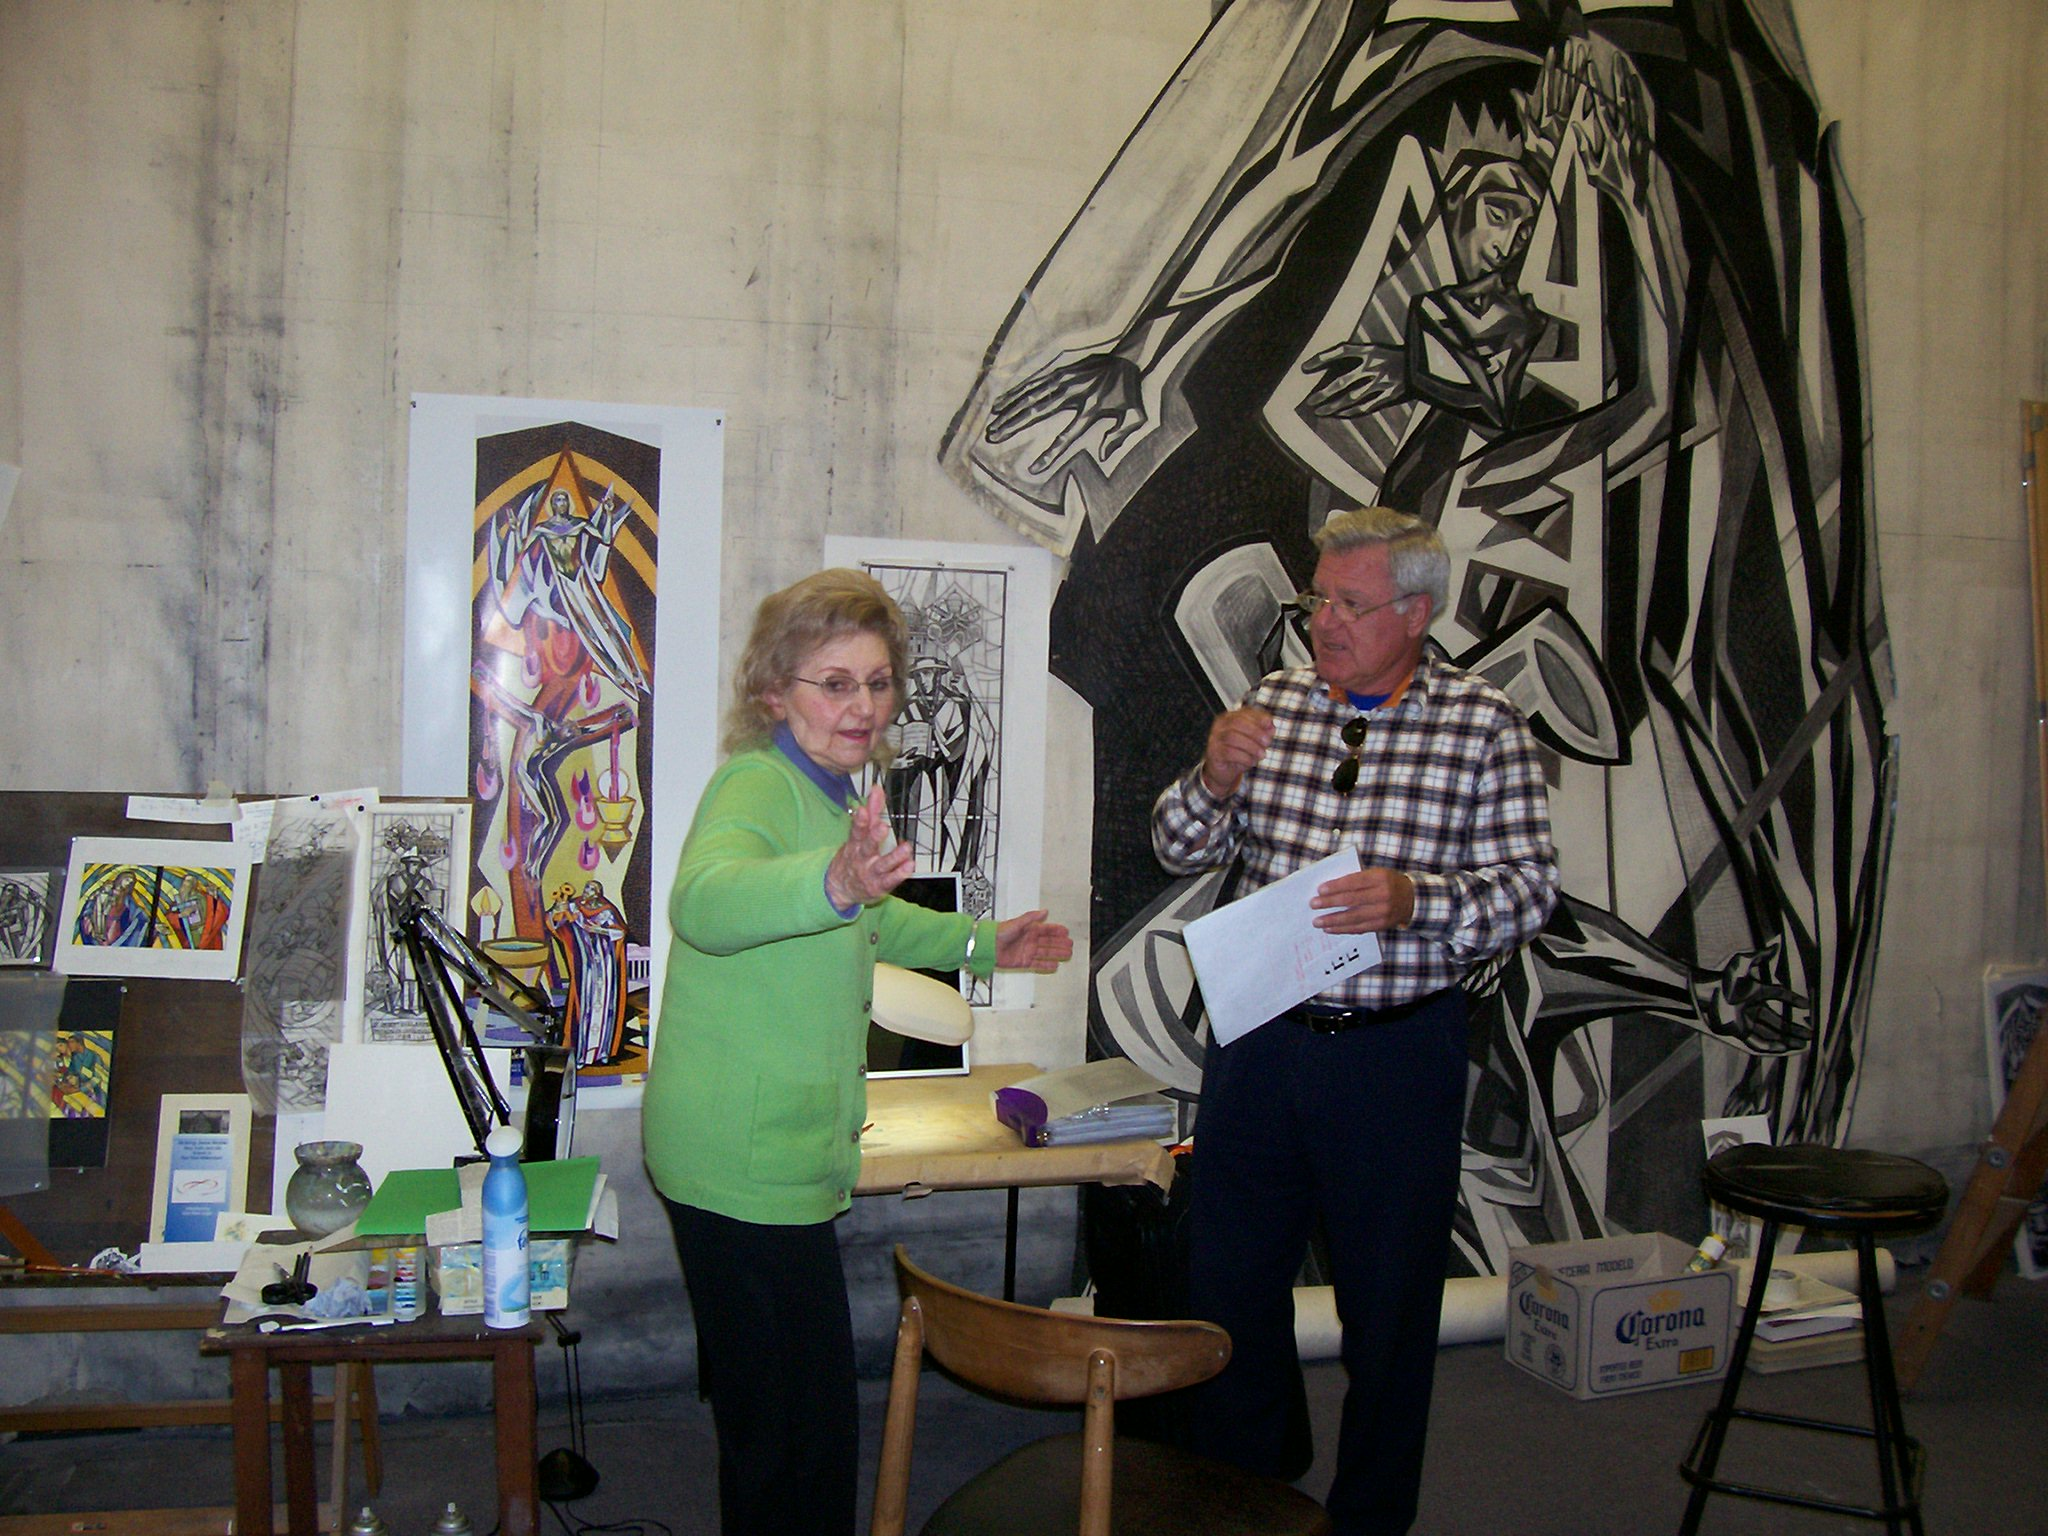 Photo 8. Isabel and Dr. Soons in her atelier